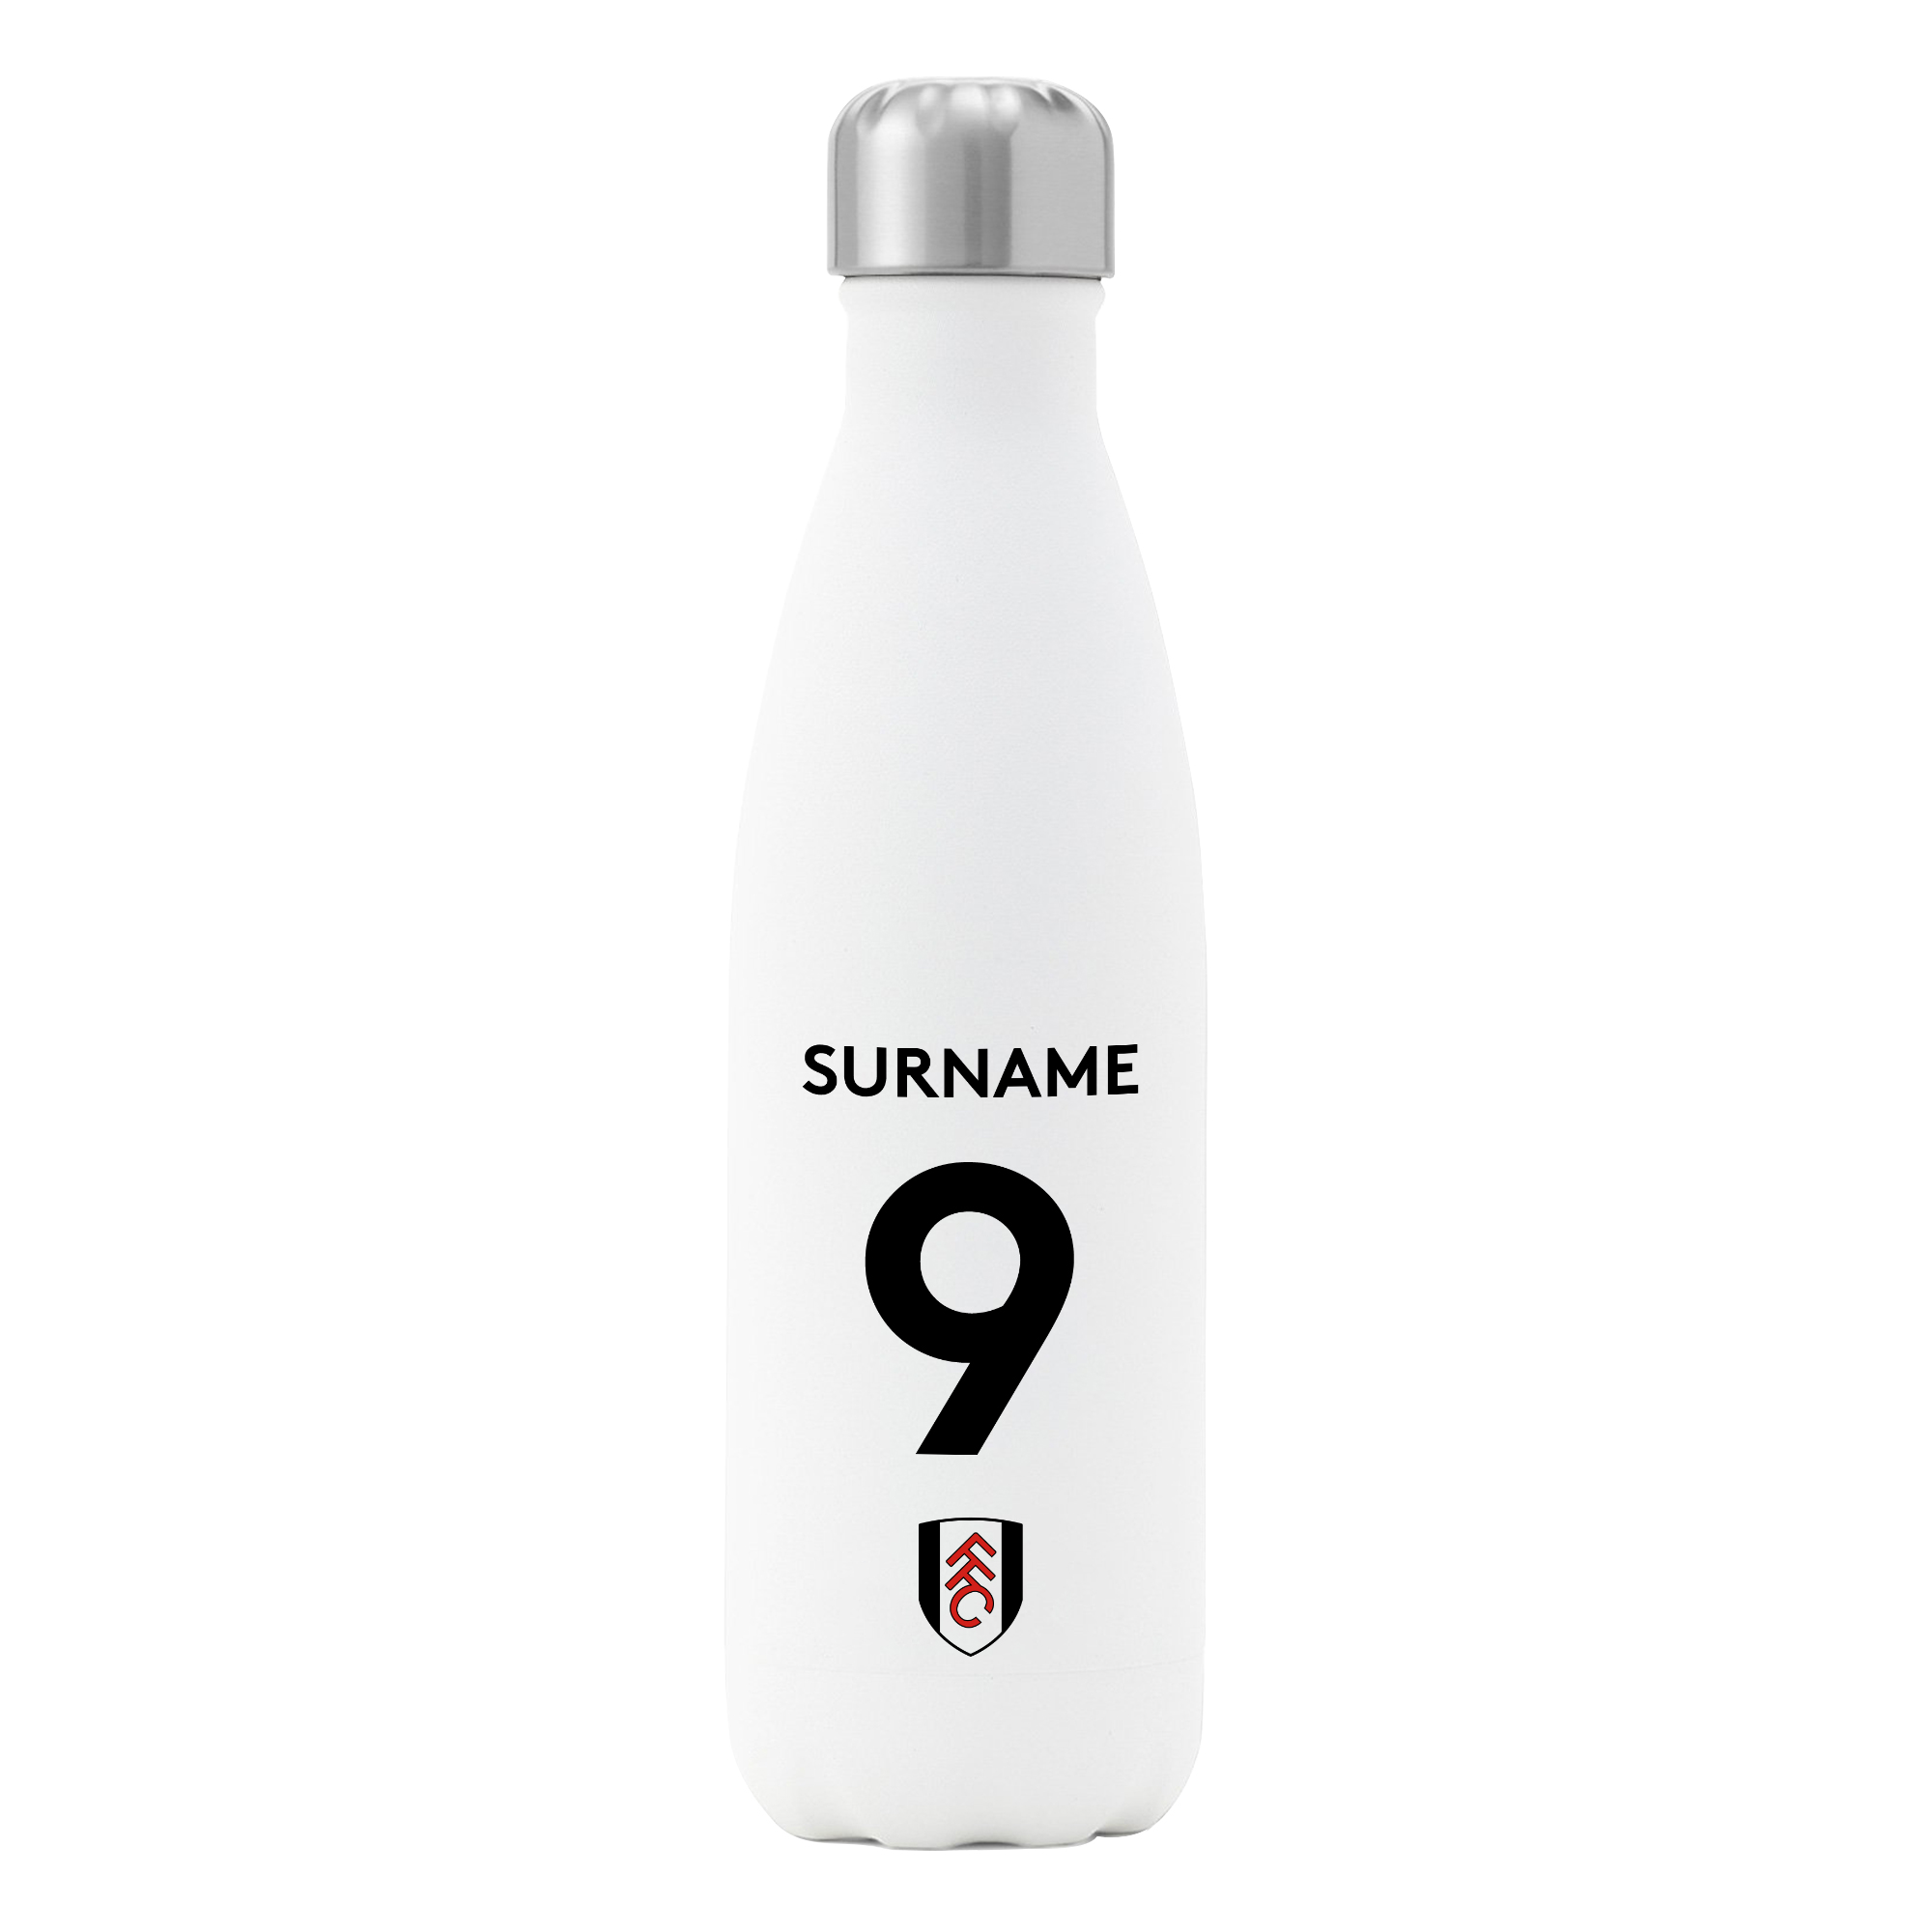 Fulham FC Back of Shirt Insulated Water Bottle - White